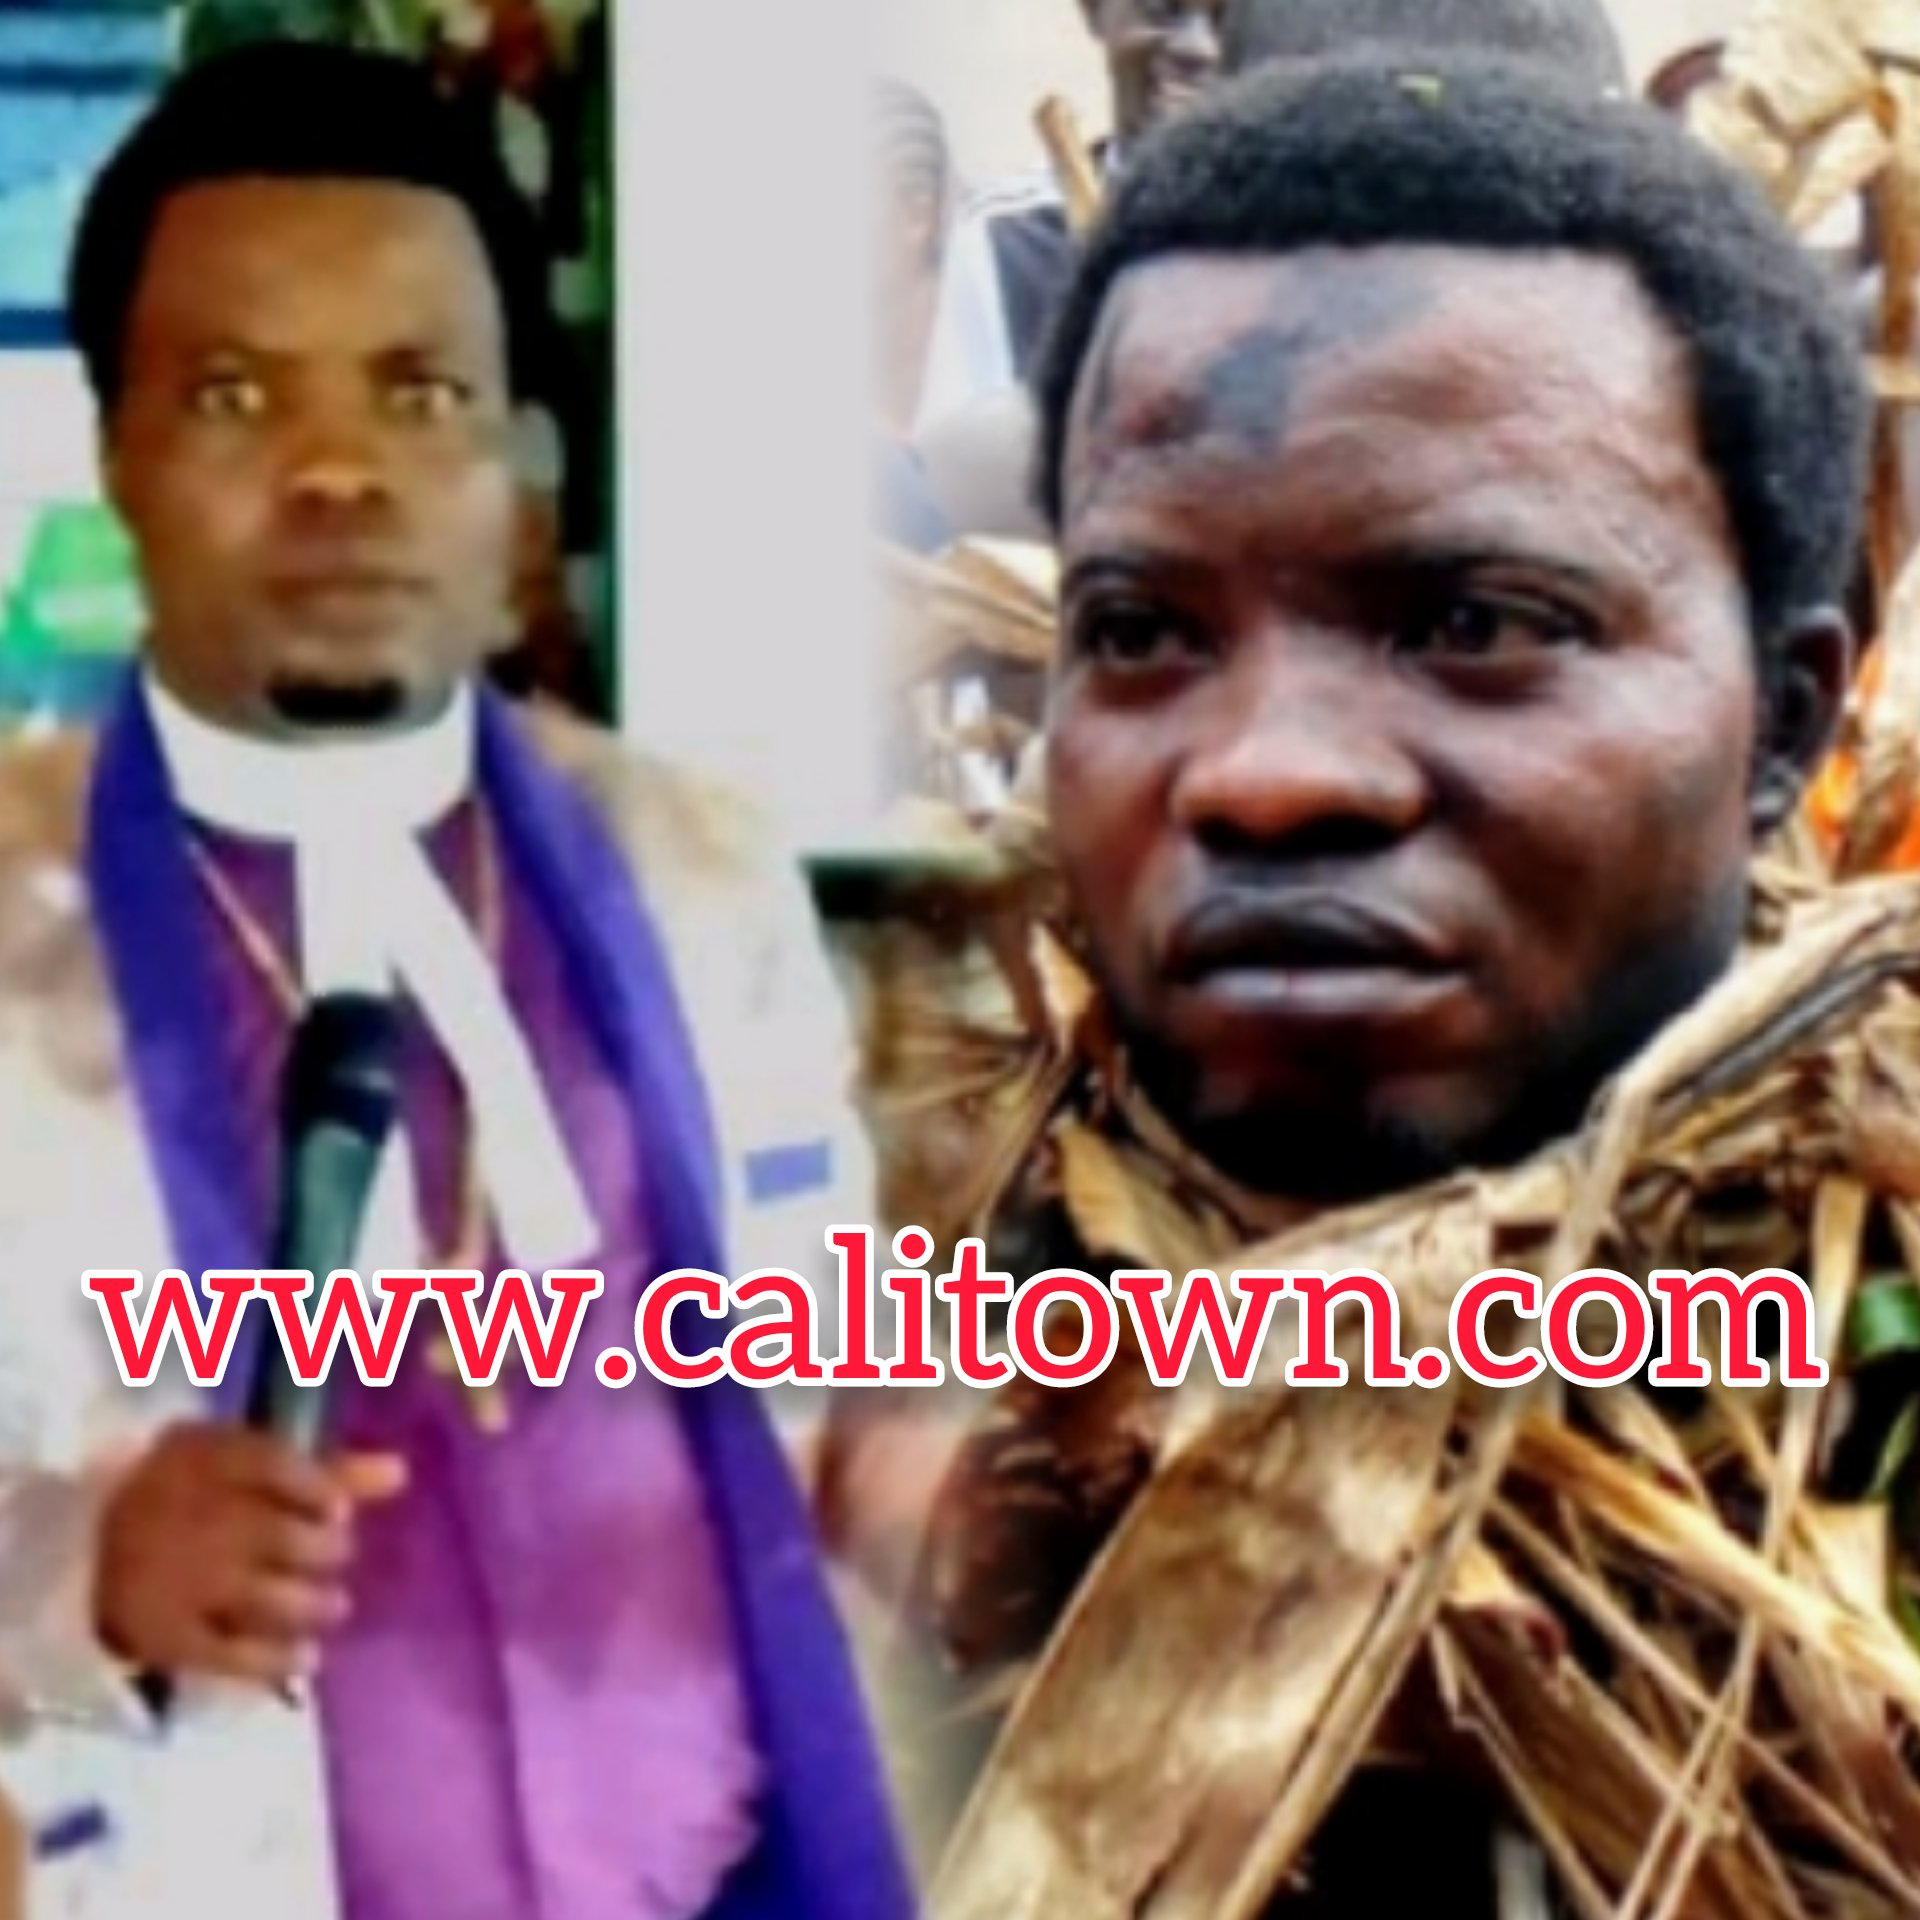 CR Community Parades Pastor Scamming People In The Name Of God